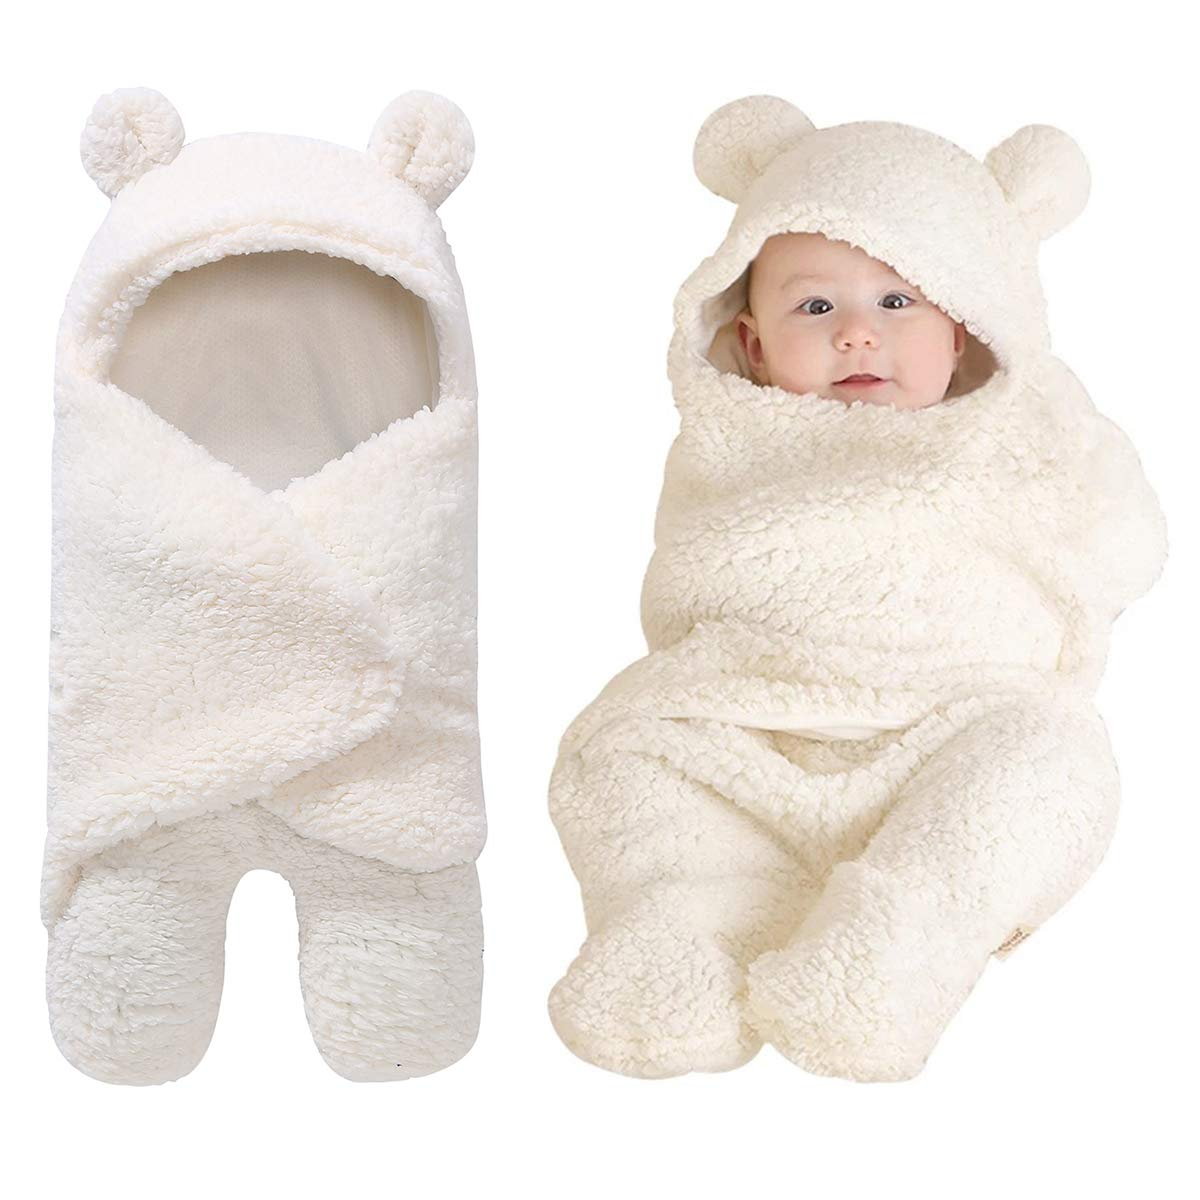 Baby Receiving Blanket, Hooded Cotton Plush Swaddle Blanket, Newborn Cute Sleeping Bag Sack Unisex